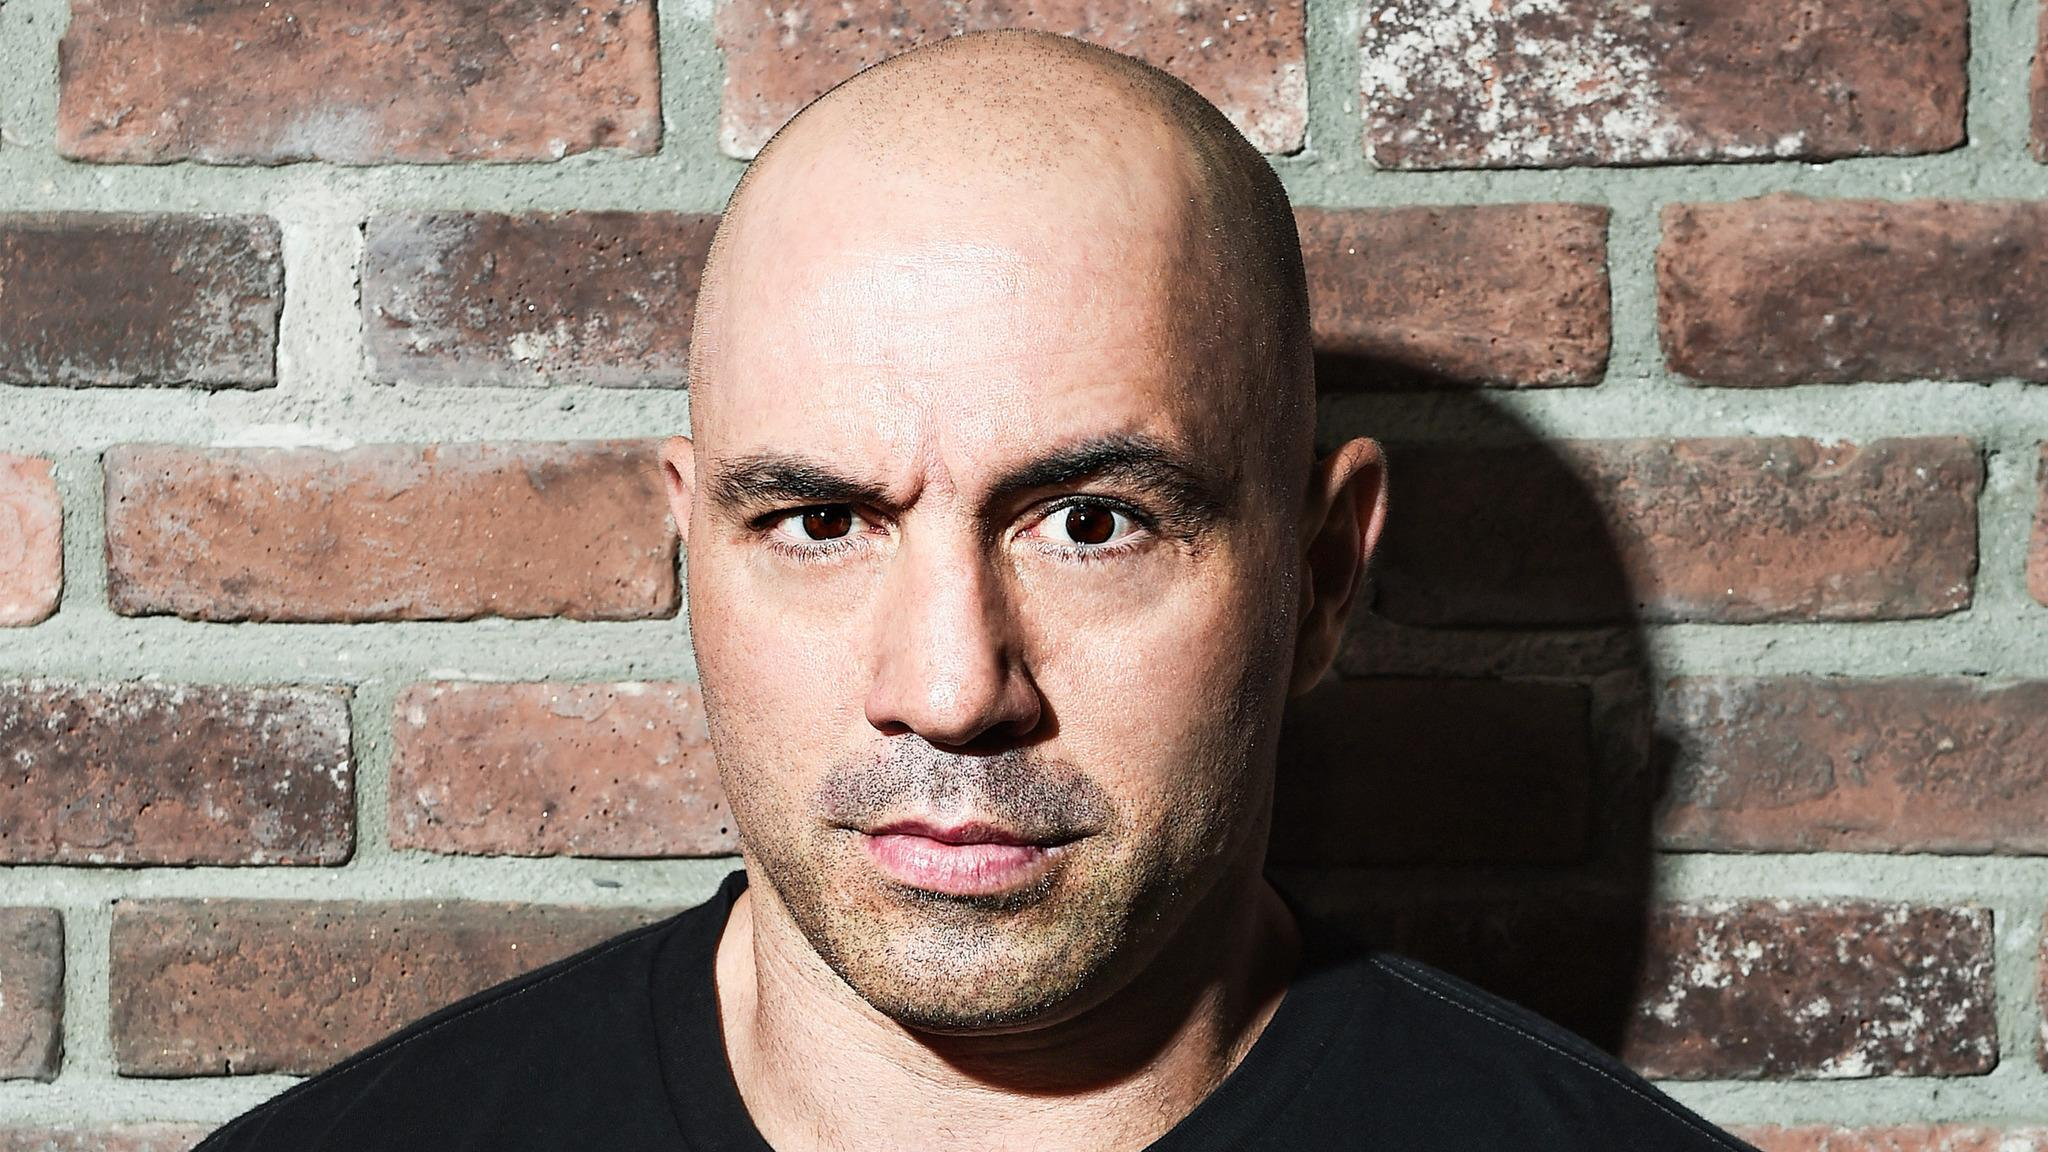 Joe Rogan at The Aquarium - ND